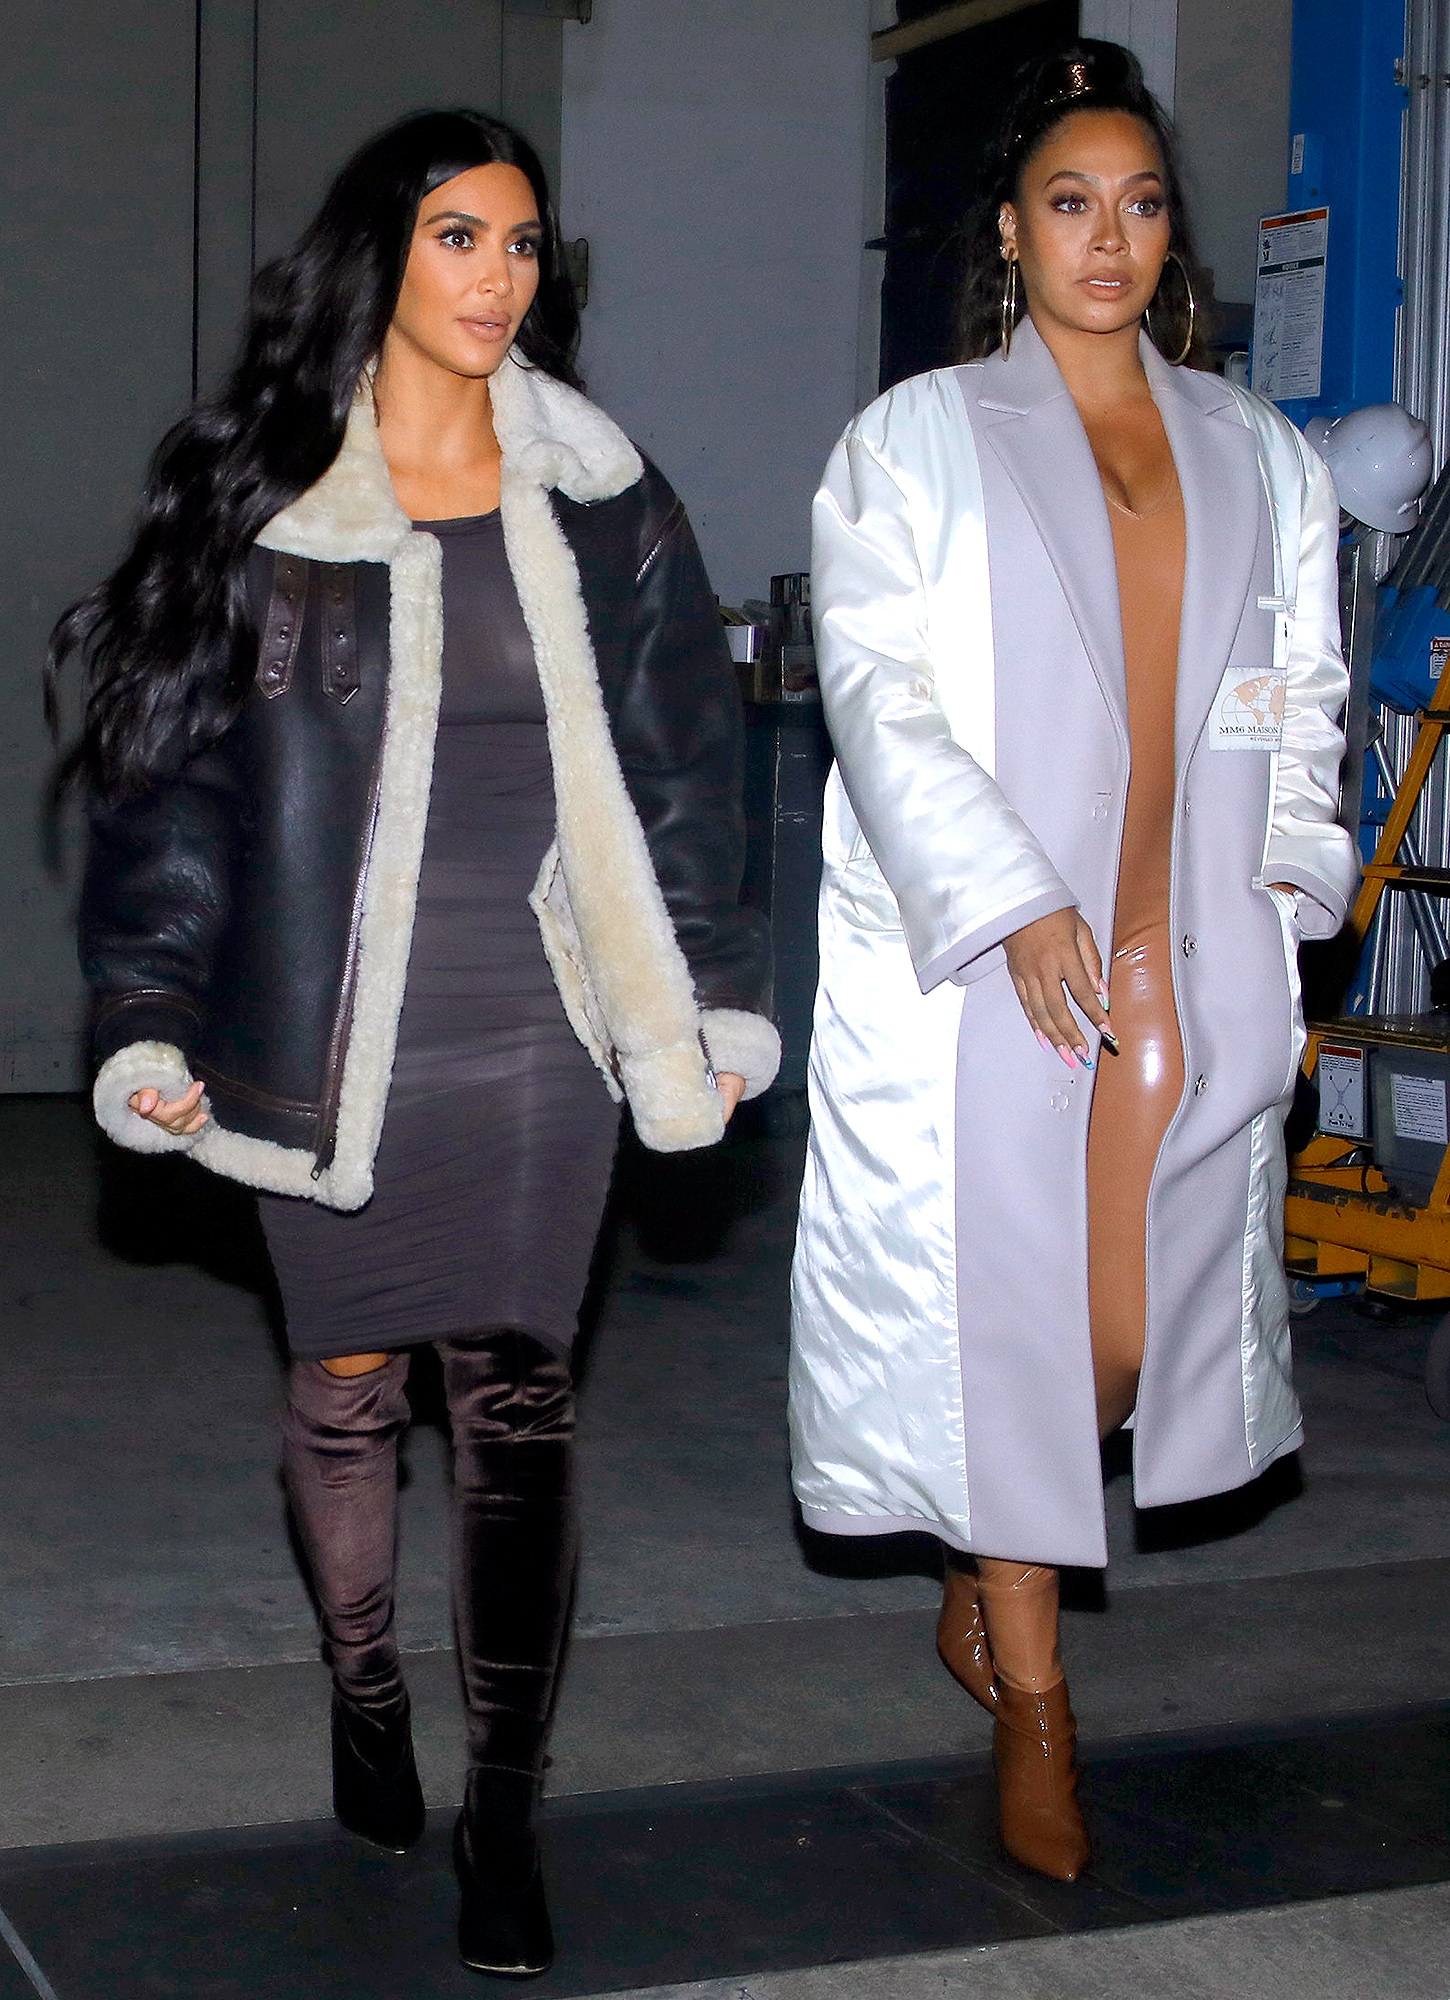 Kim Kardashian and La La Anthony show off their style as they exit the Kanye West concert